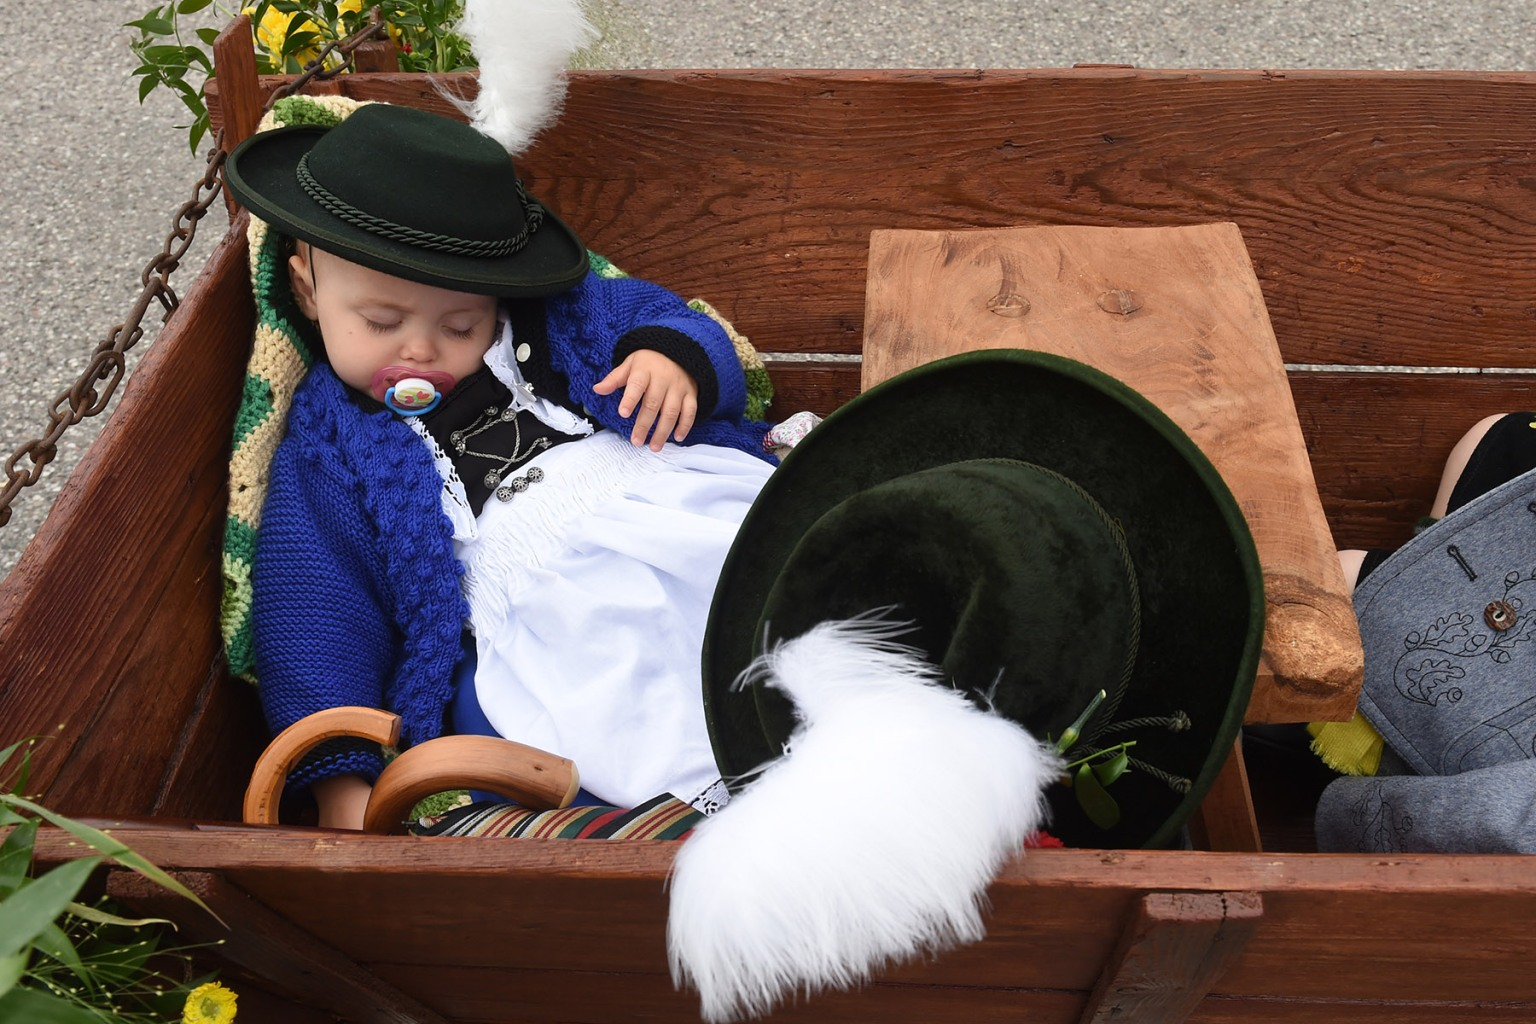 A child sleeps in a cart during the traditional costume and riflemen parade on the second day of the Oktoberfest beer festival in Munich, Germany, on Sept. 23. The world's biggest beer festival runs until Oct. 7. CHRISTOF STACHE/AFP/Getty Images